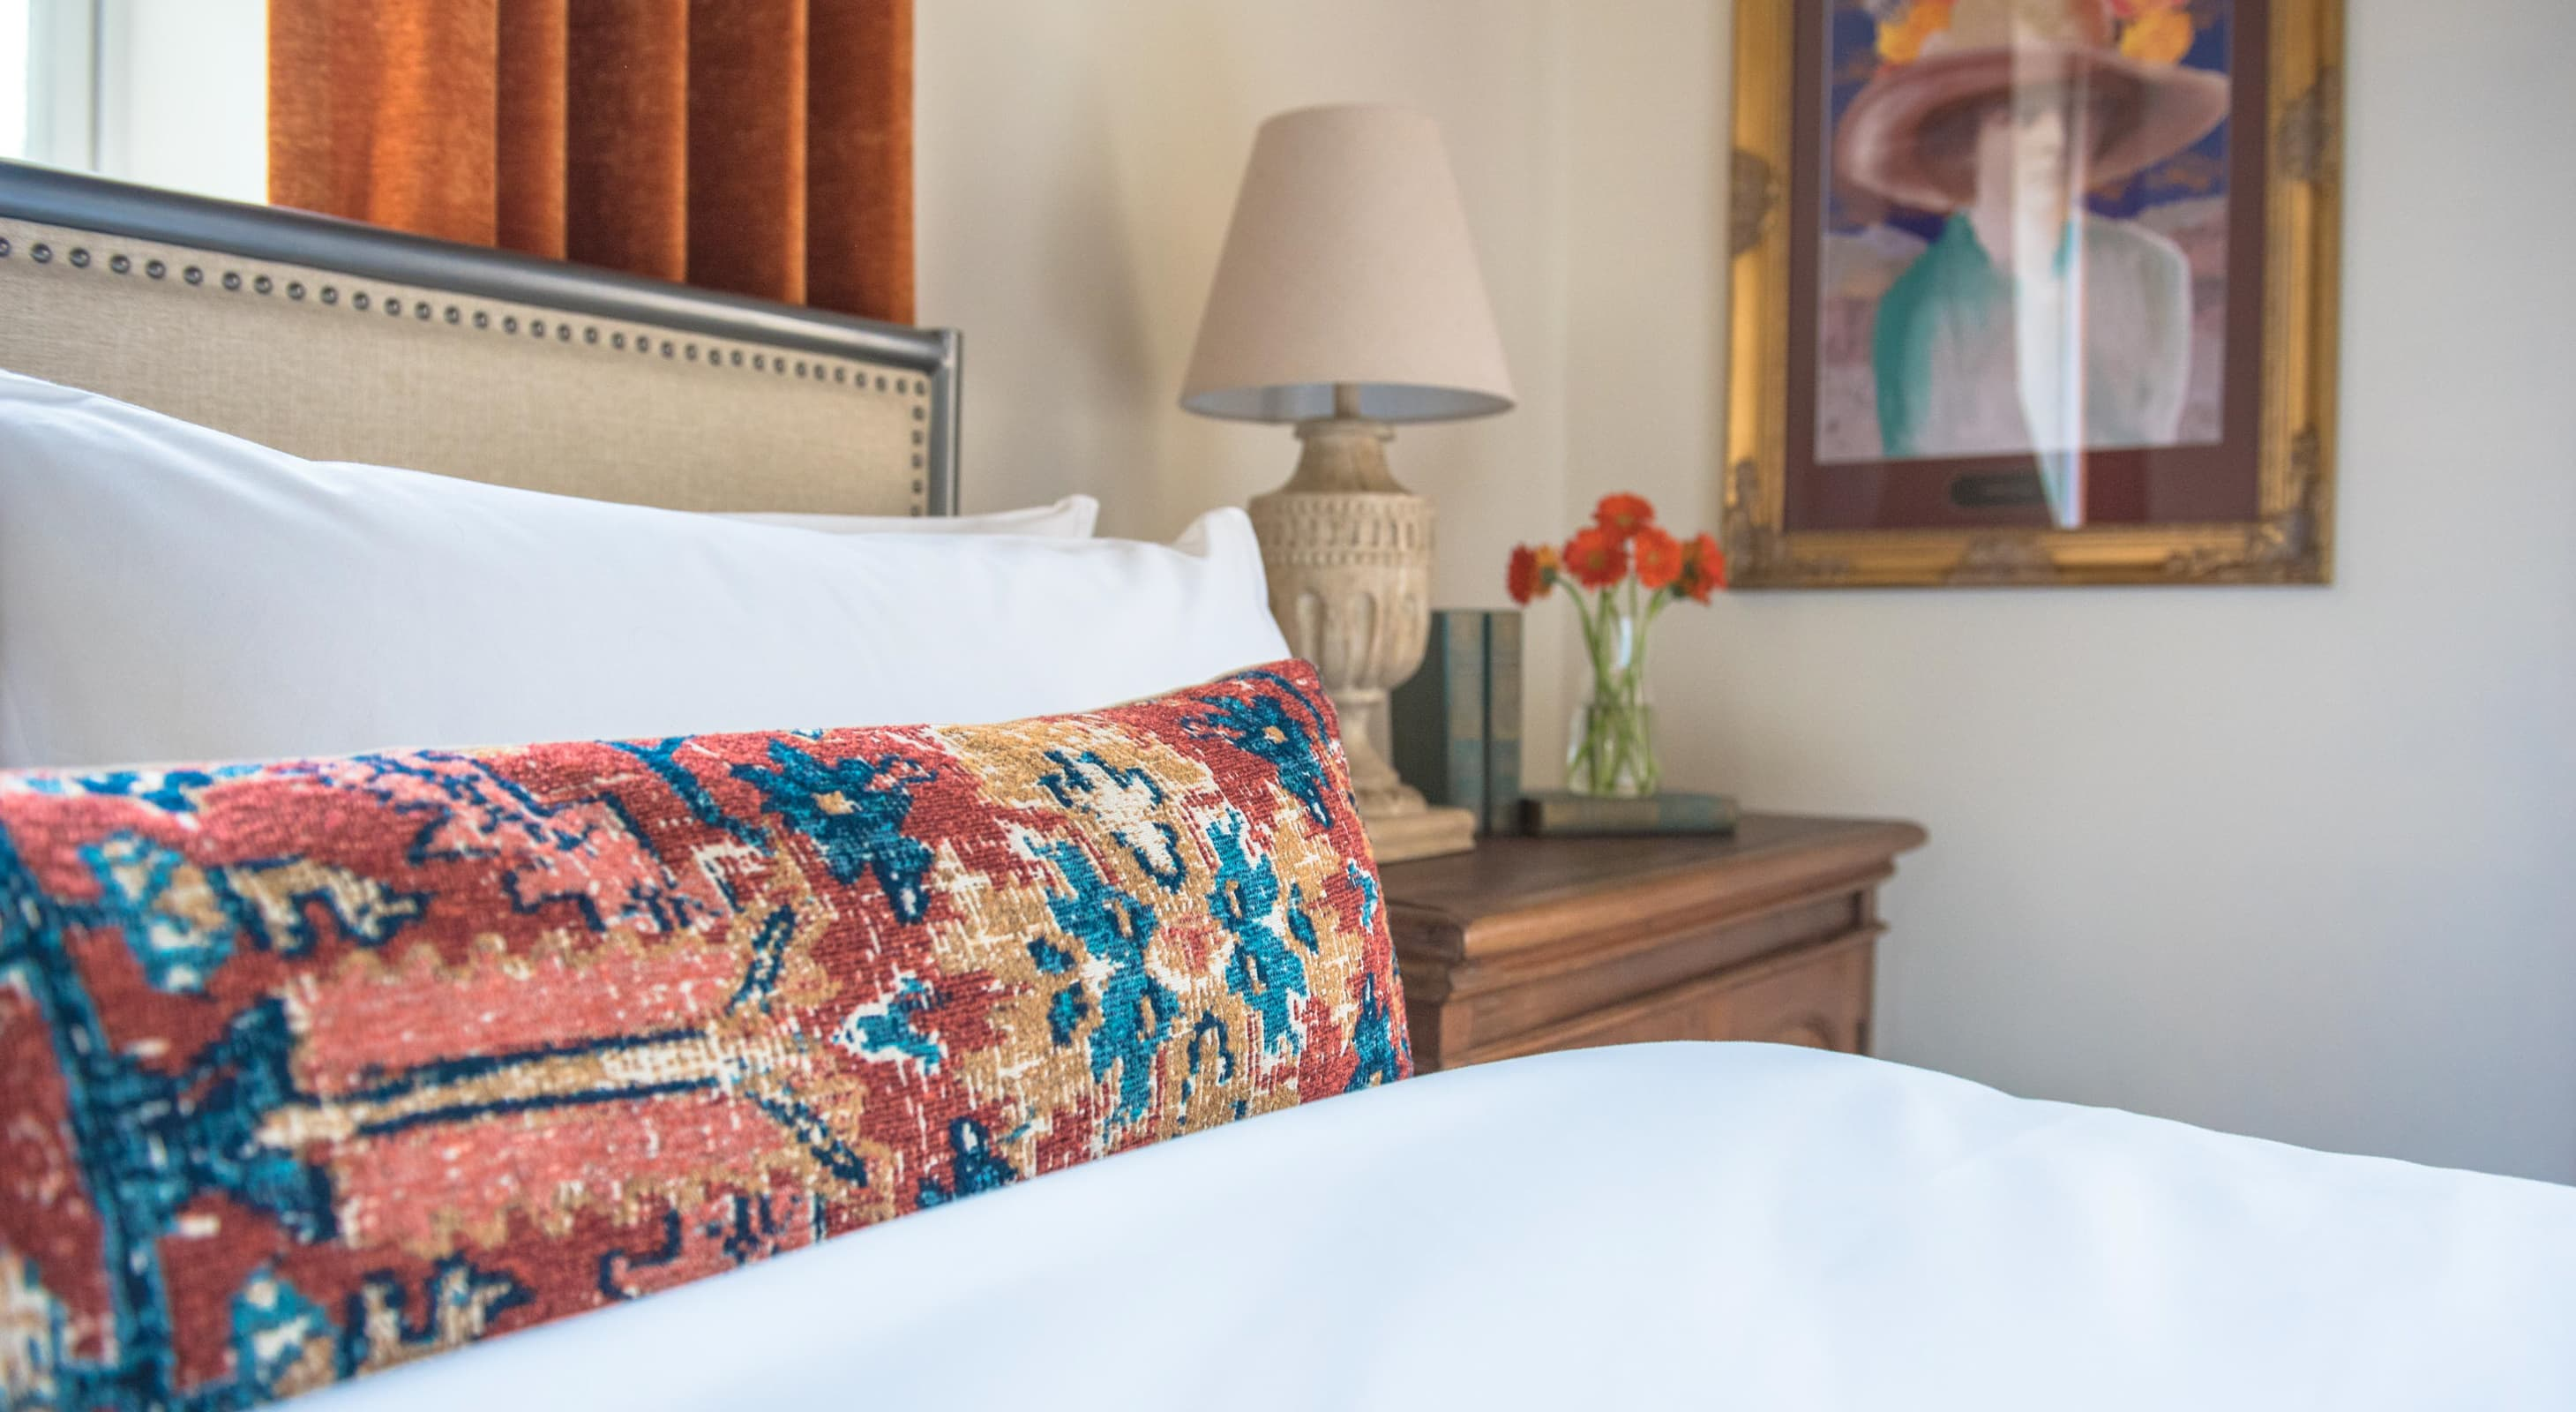 Greenway room bed with colorful pillows